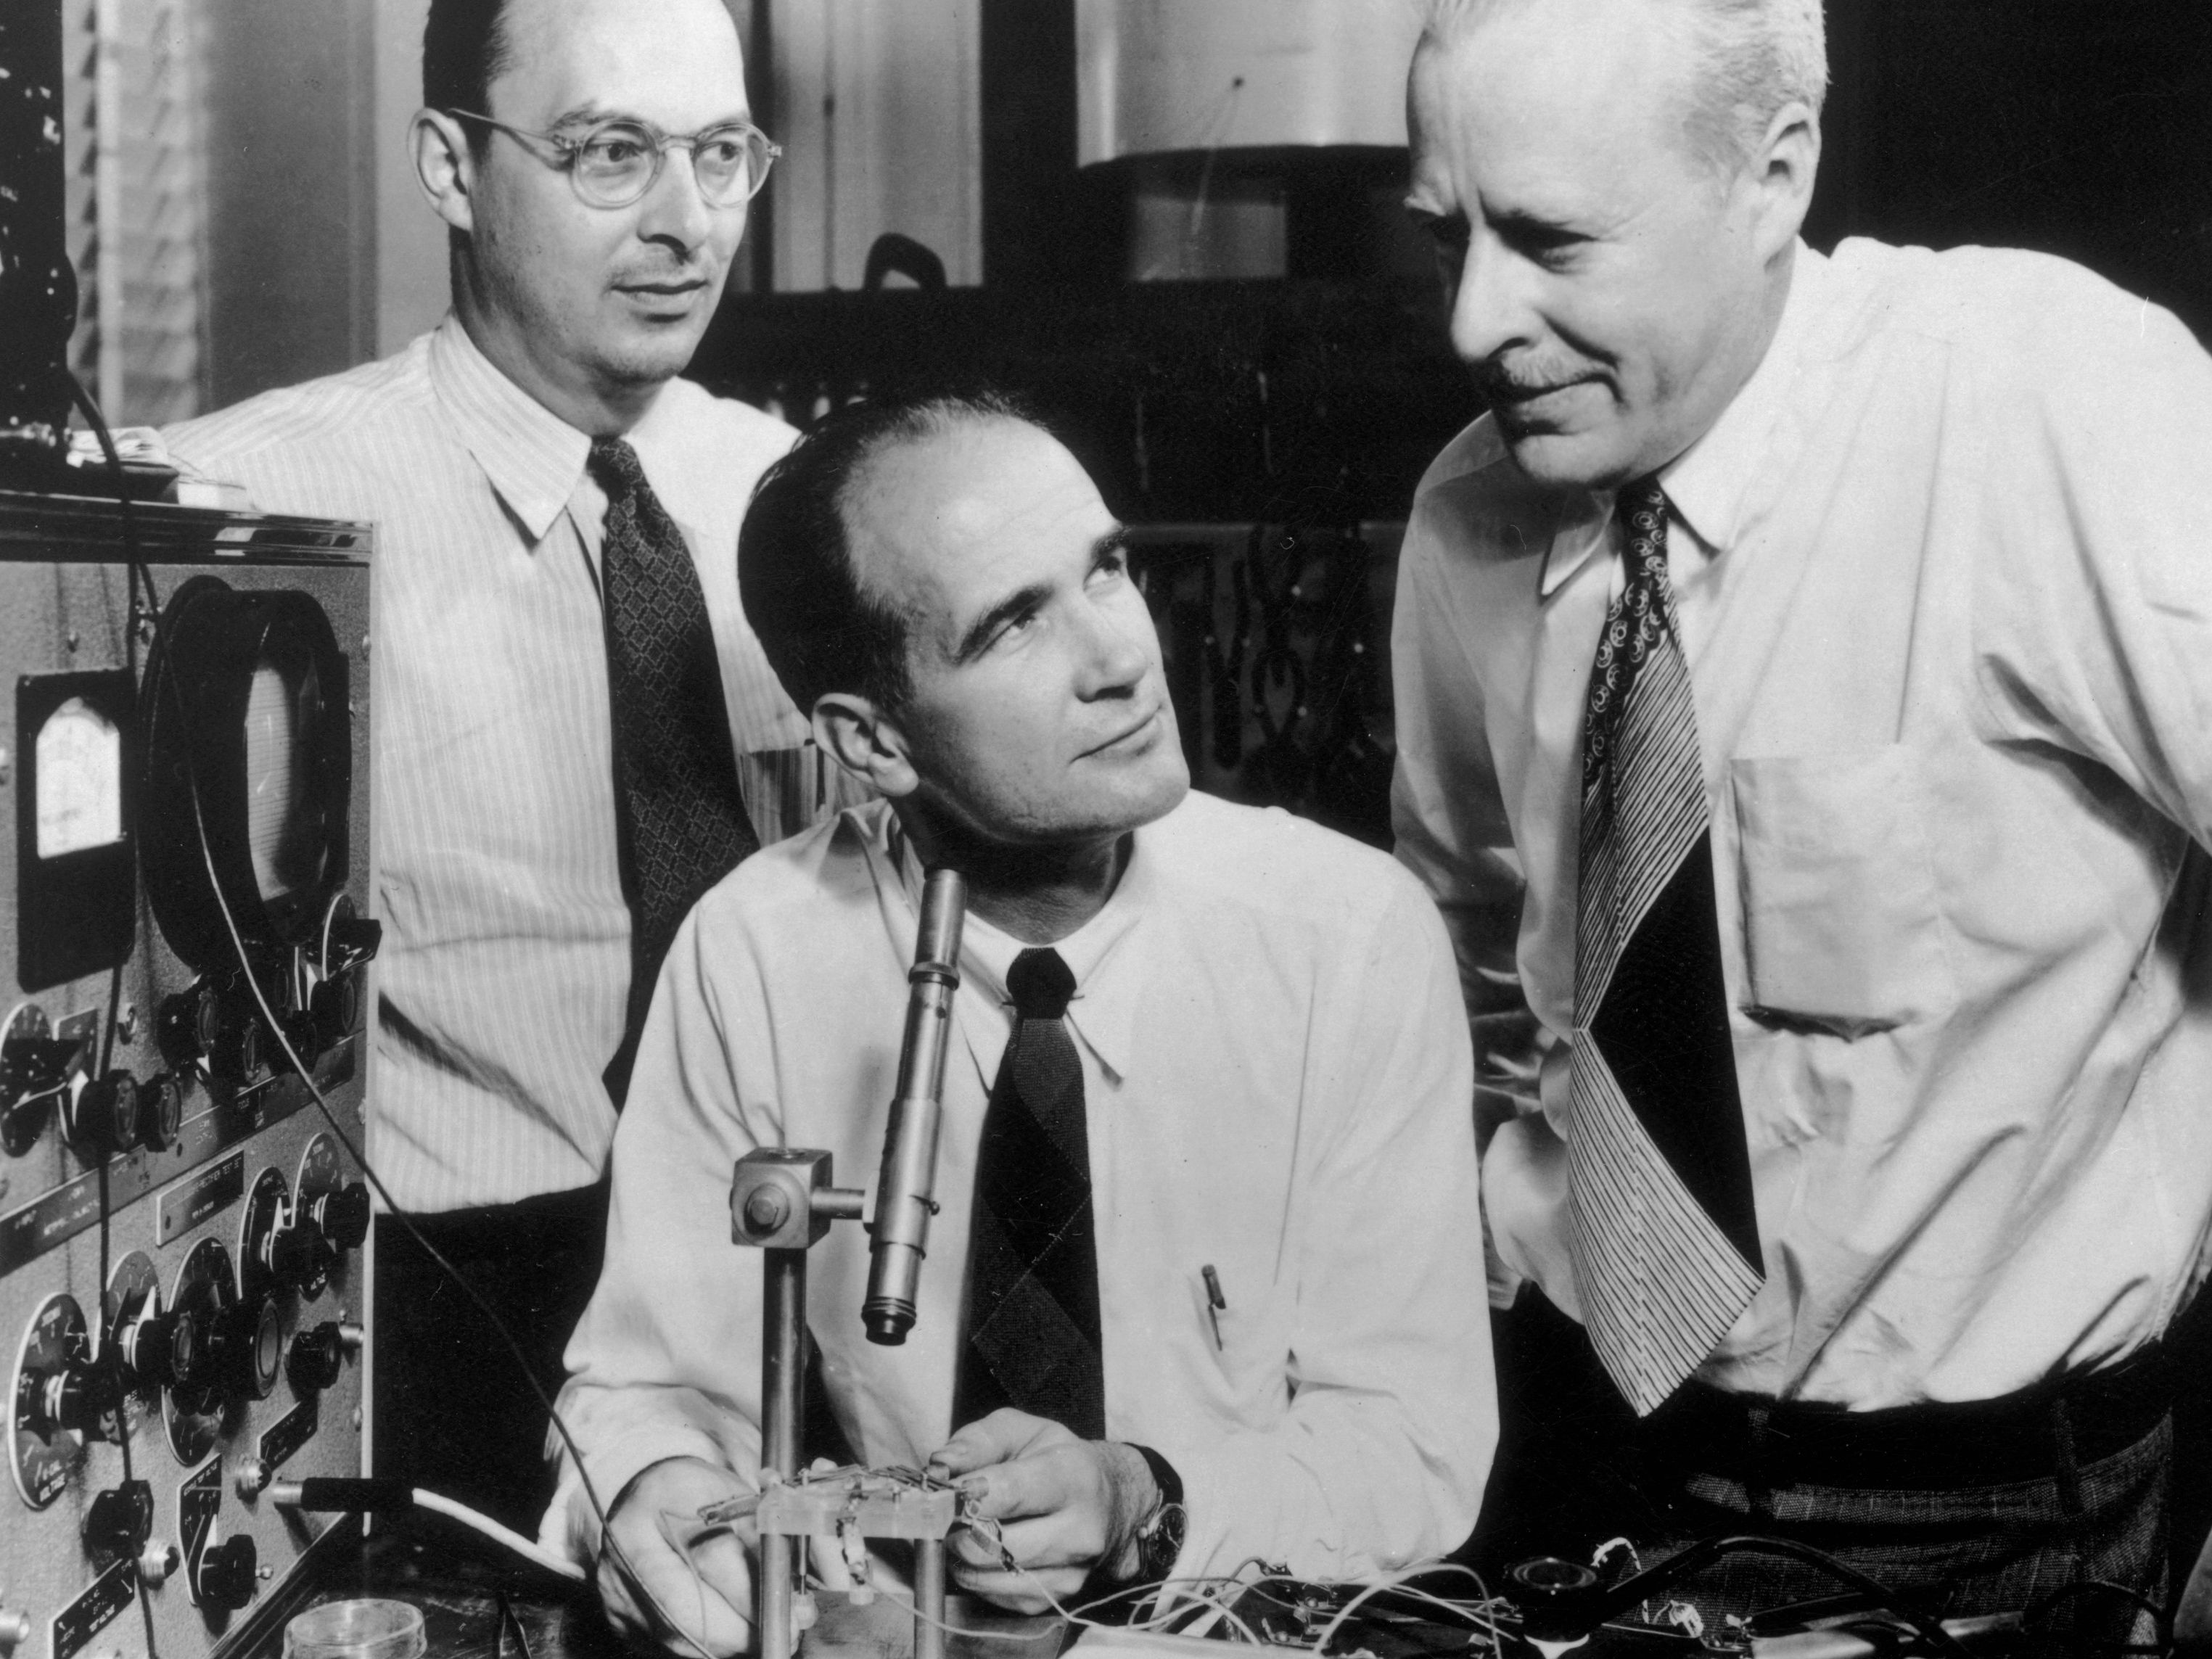 Biography of William Shockley, American Physicist and Inventor